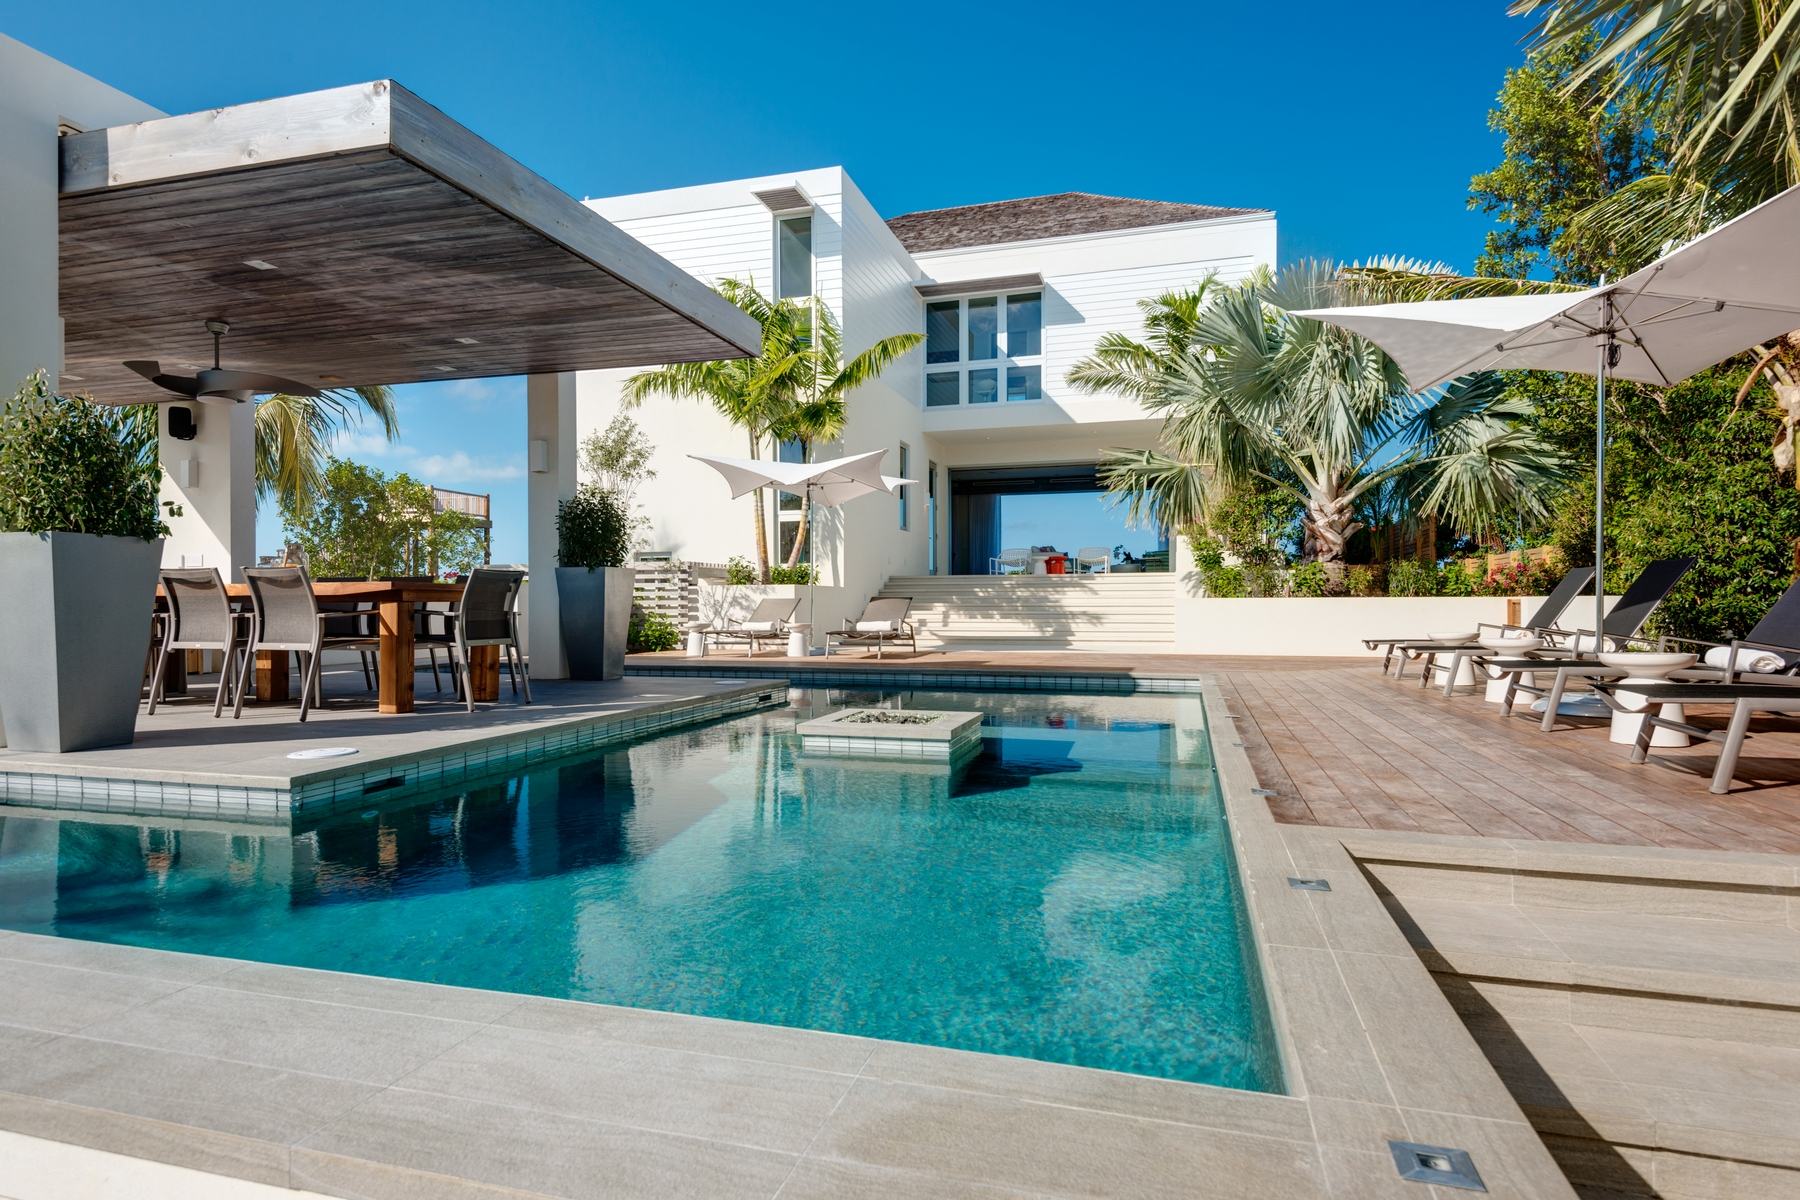 Casa Unifamiliar por un Venta en The Dunes Villa 1 ~ Managed by Grace Bay Resorts North Shore Beachfront, Turtle Cove, Providenciales, TC Islas Turcas Y Caicos